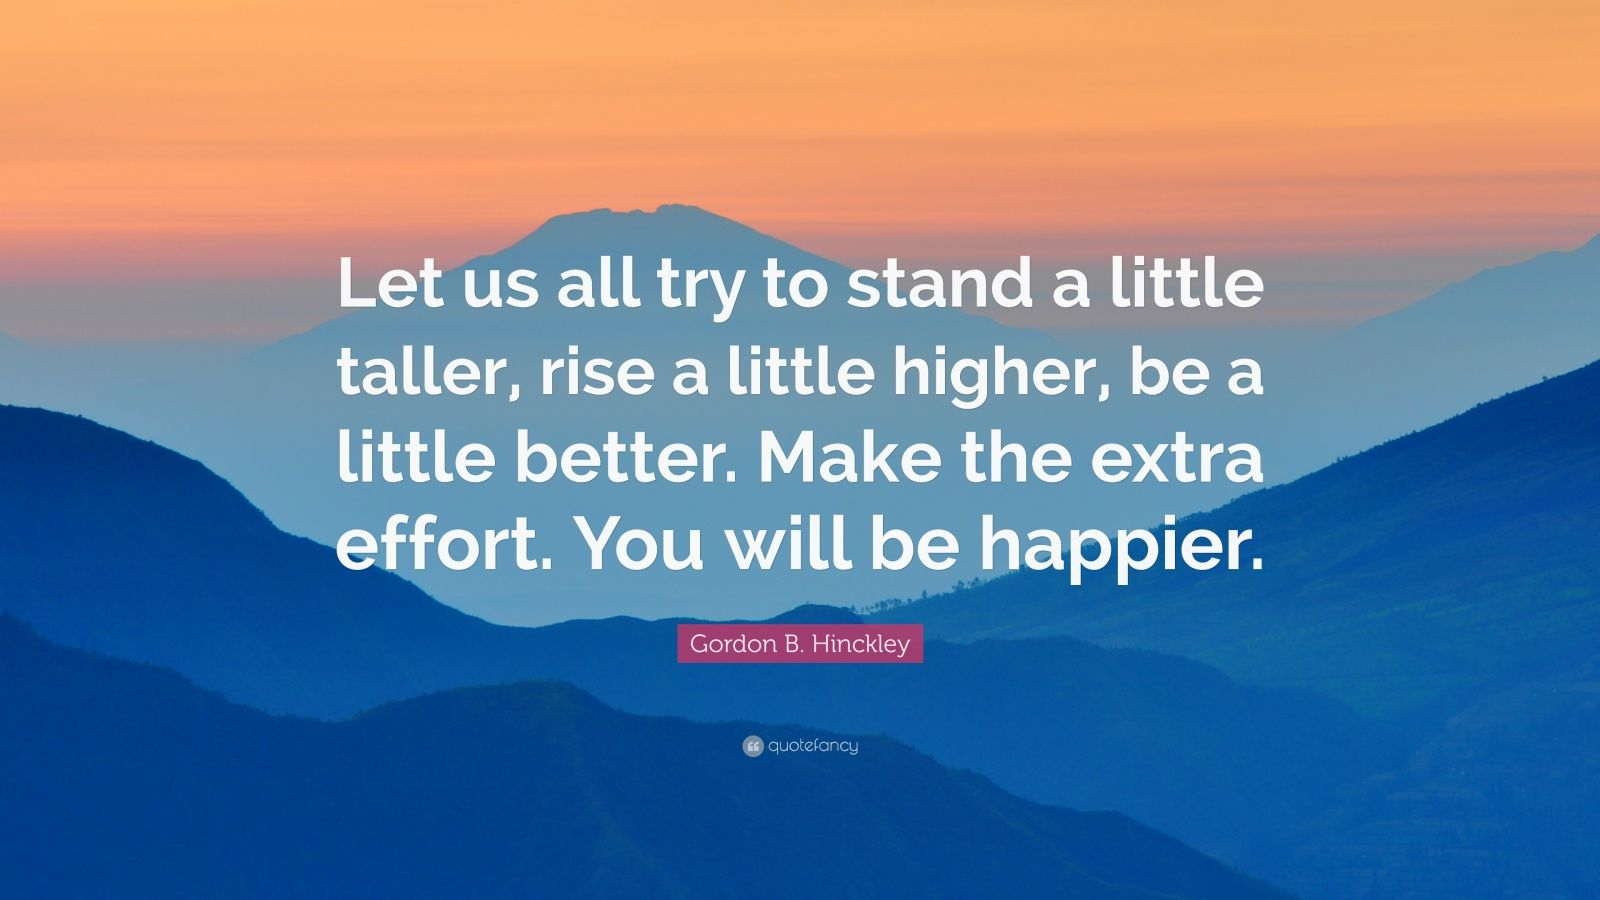 """Gordon B. Hinckley Quote: """"Let us all try to stand a little taller, rise a little higher, be a little better. Make the extra effort. You will be happier."""""""